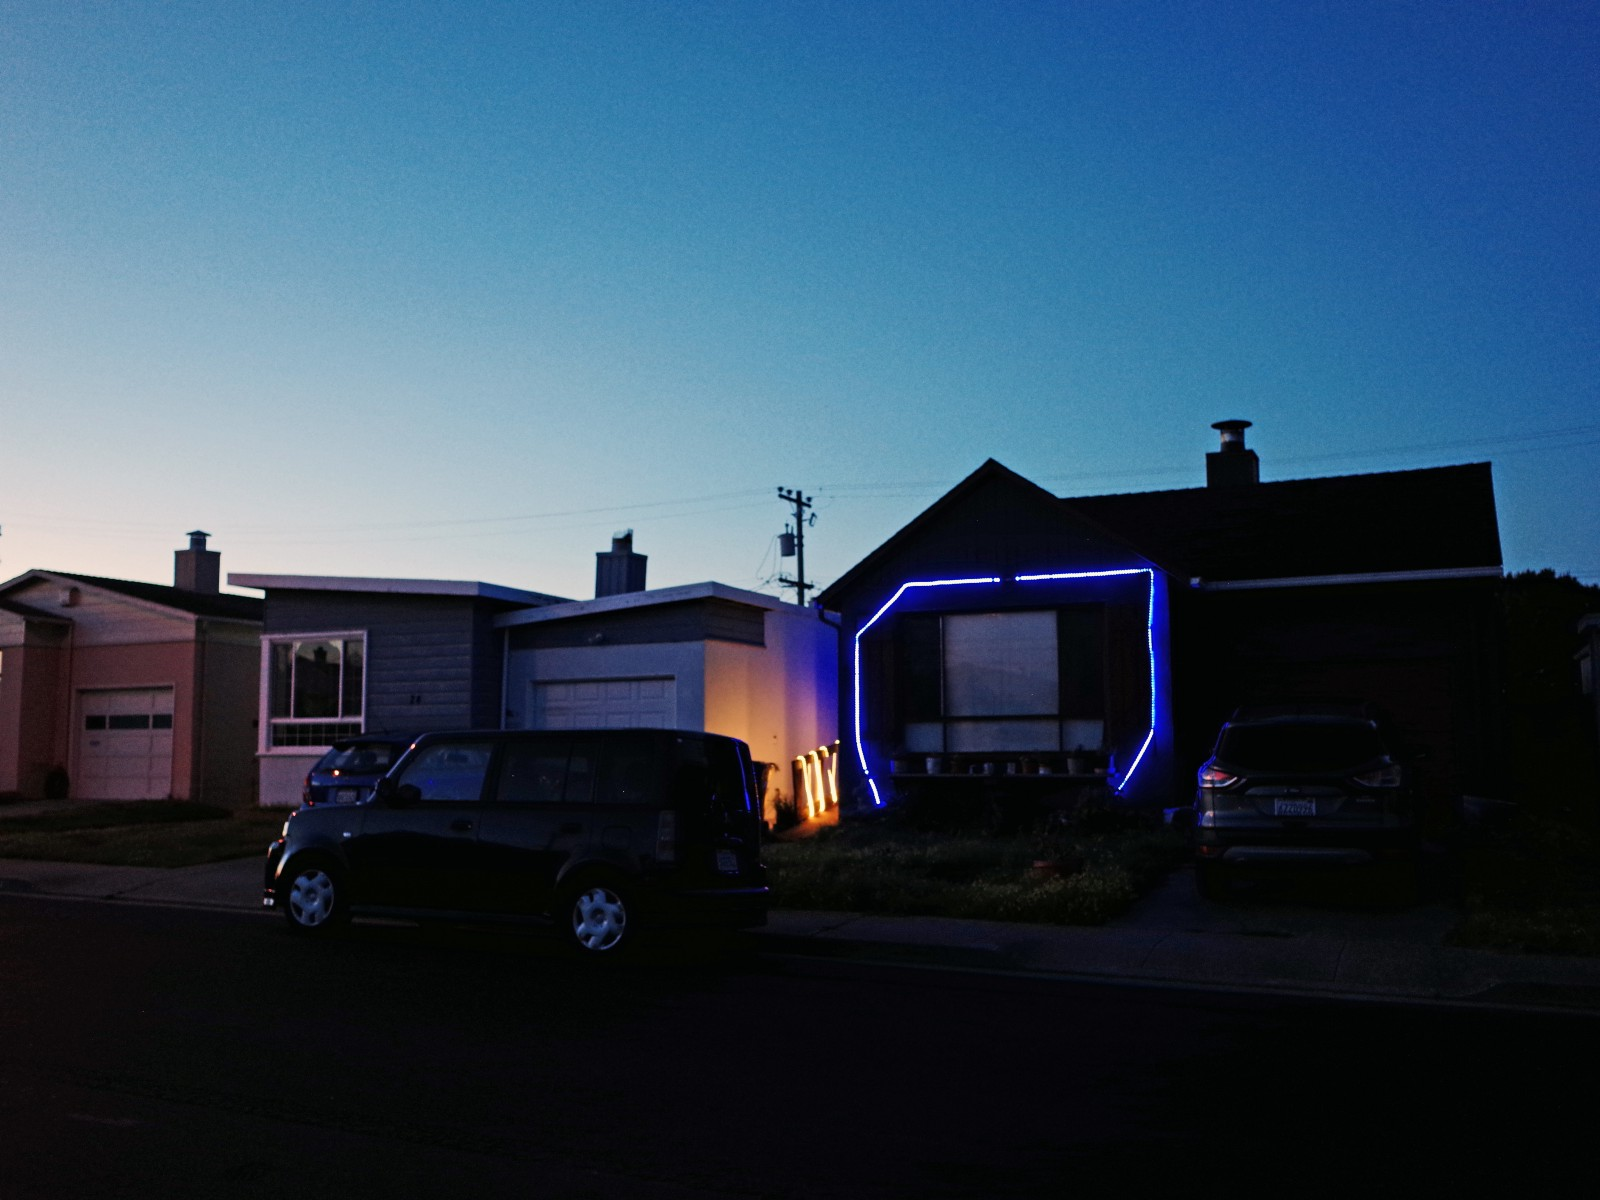 Todd Hido house with neon light frame